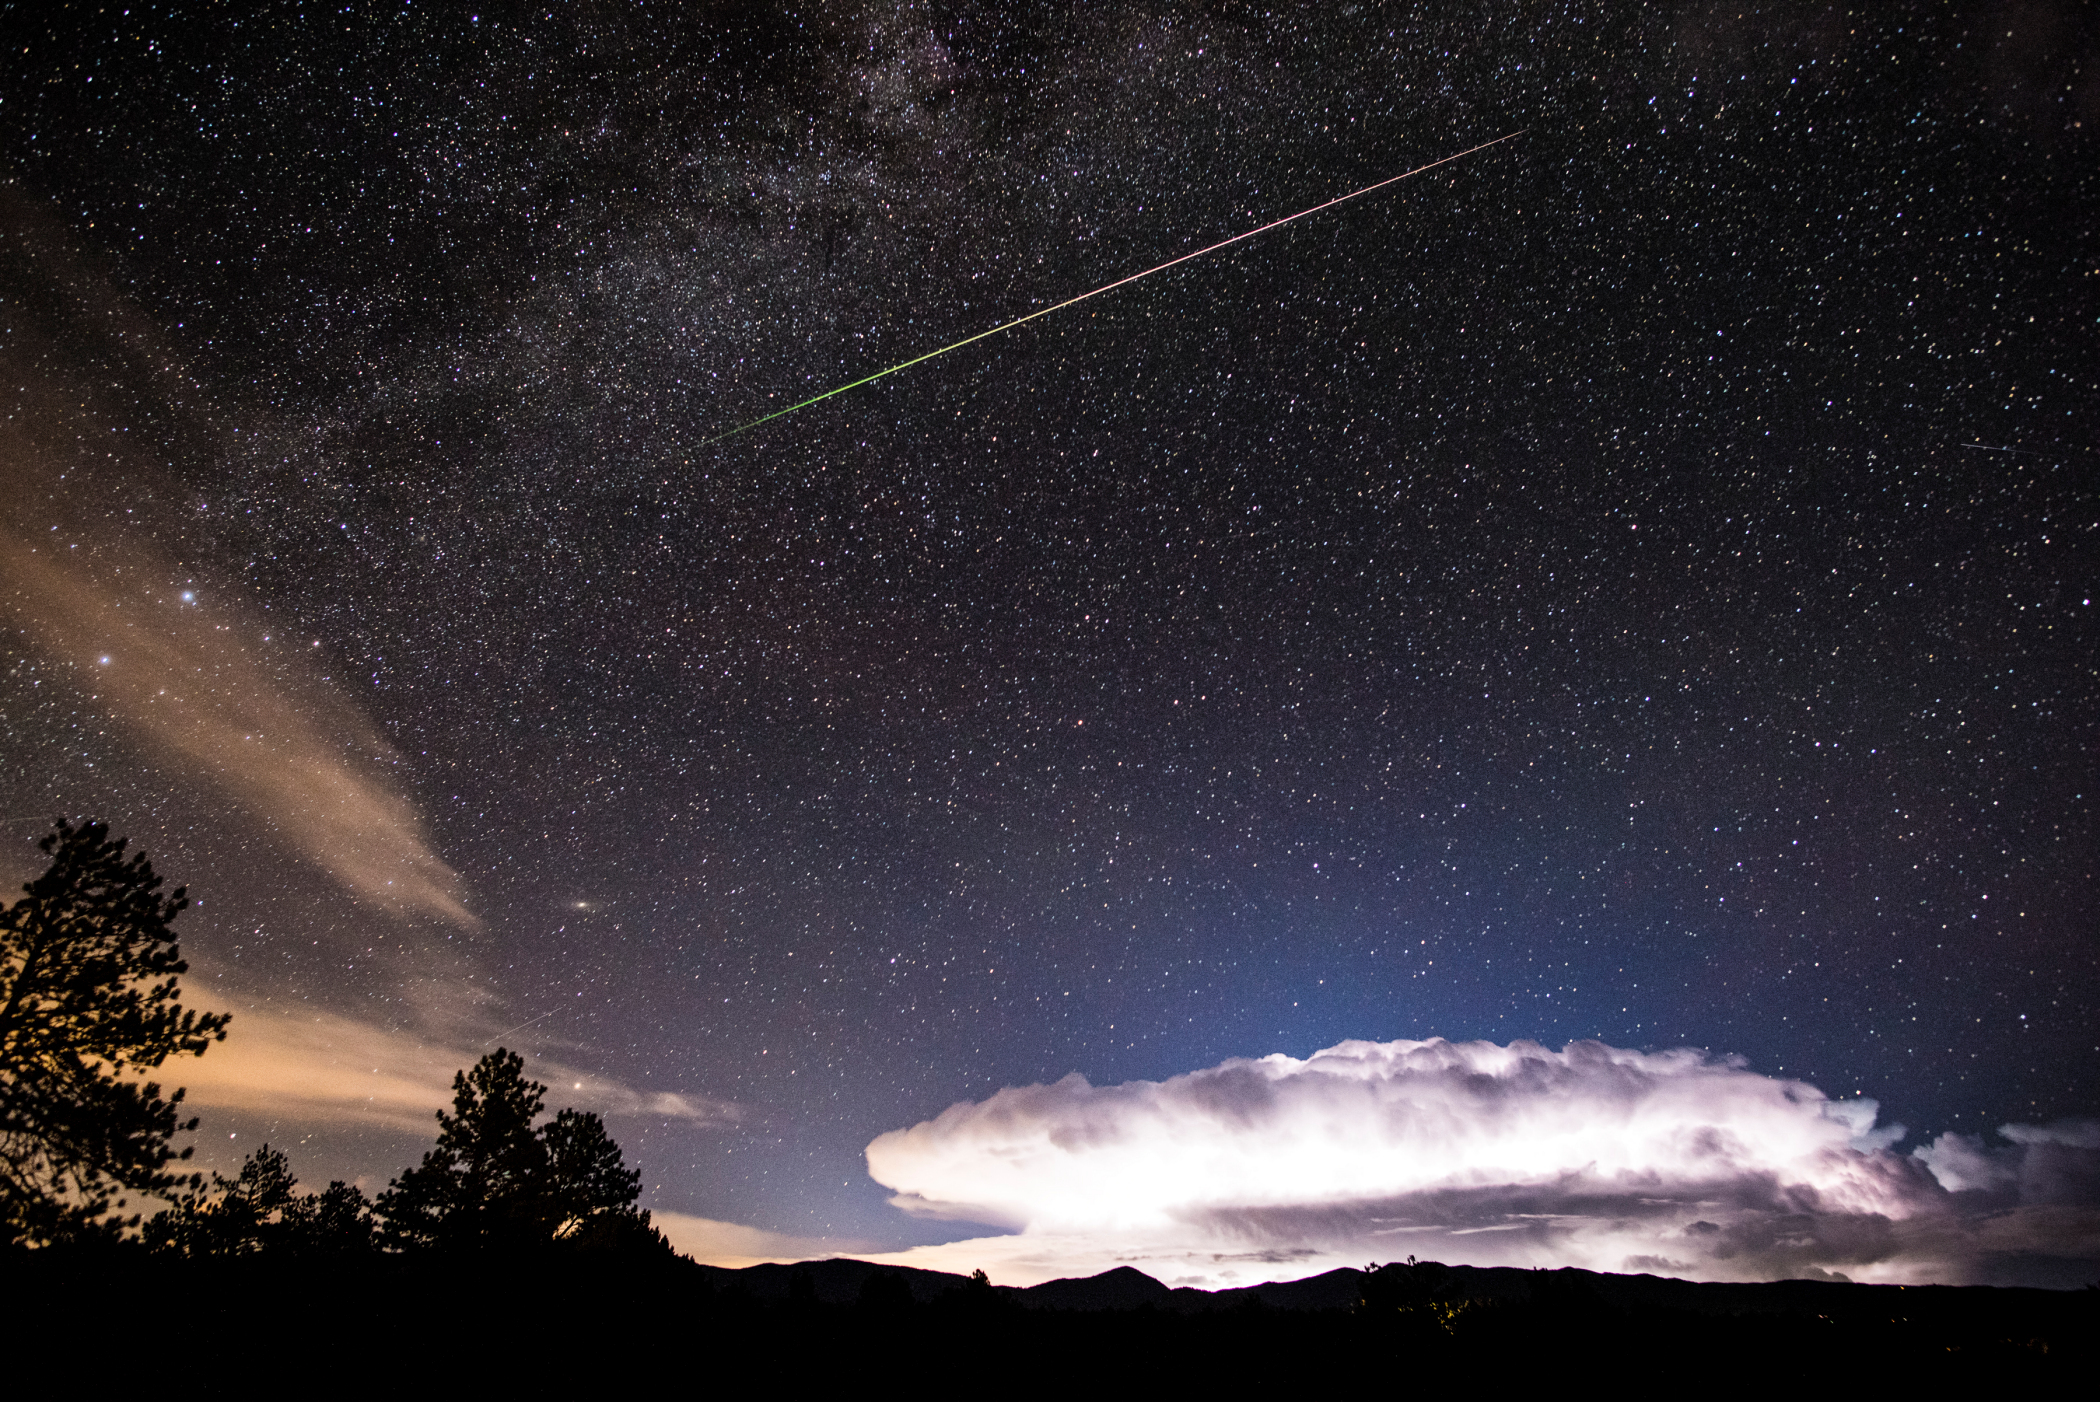 Meteor Milky Way LightningCloud.jpg